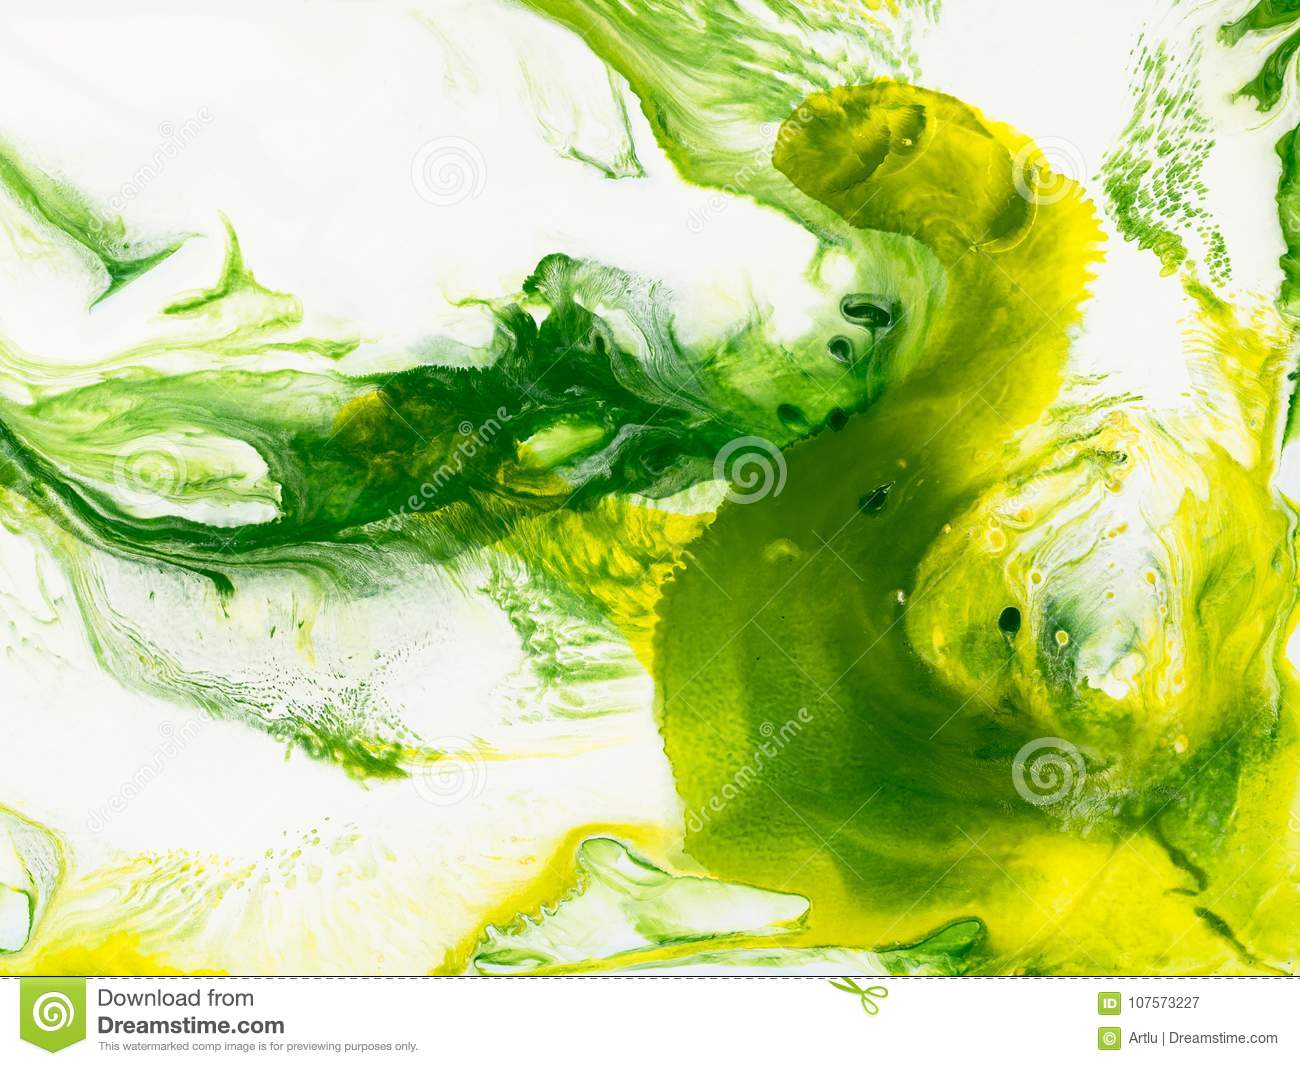 Wonderful Wallpaper Marble Painting - green-marble-abstract-hand-painted-background-close-up-acrylic-painting-canvas-wallpaper-texture-107573227  Graphic_376542.jpg